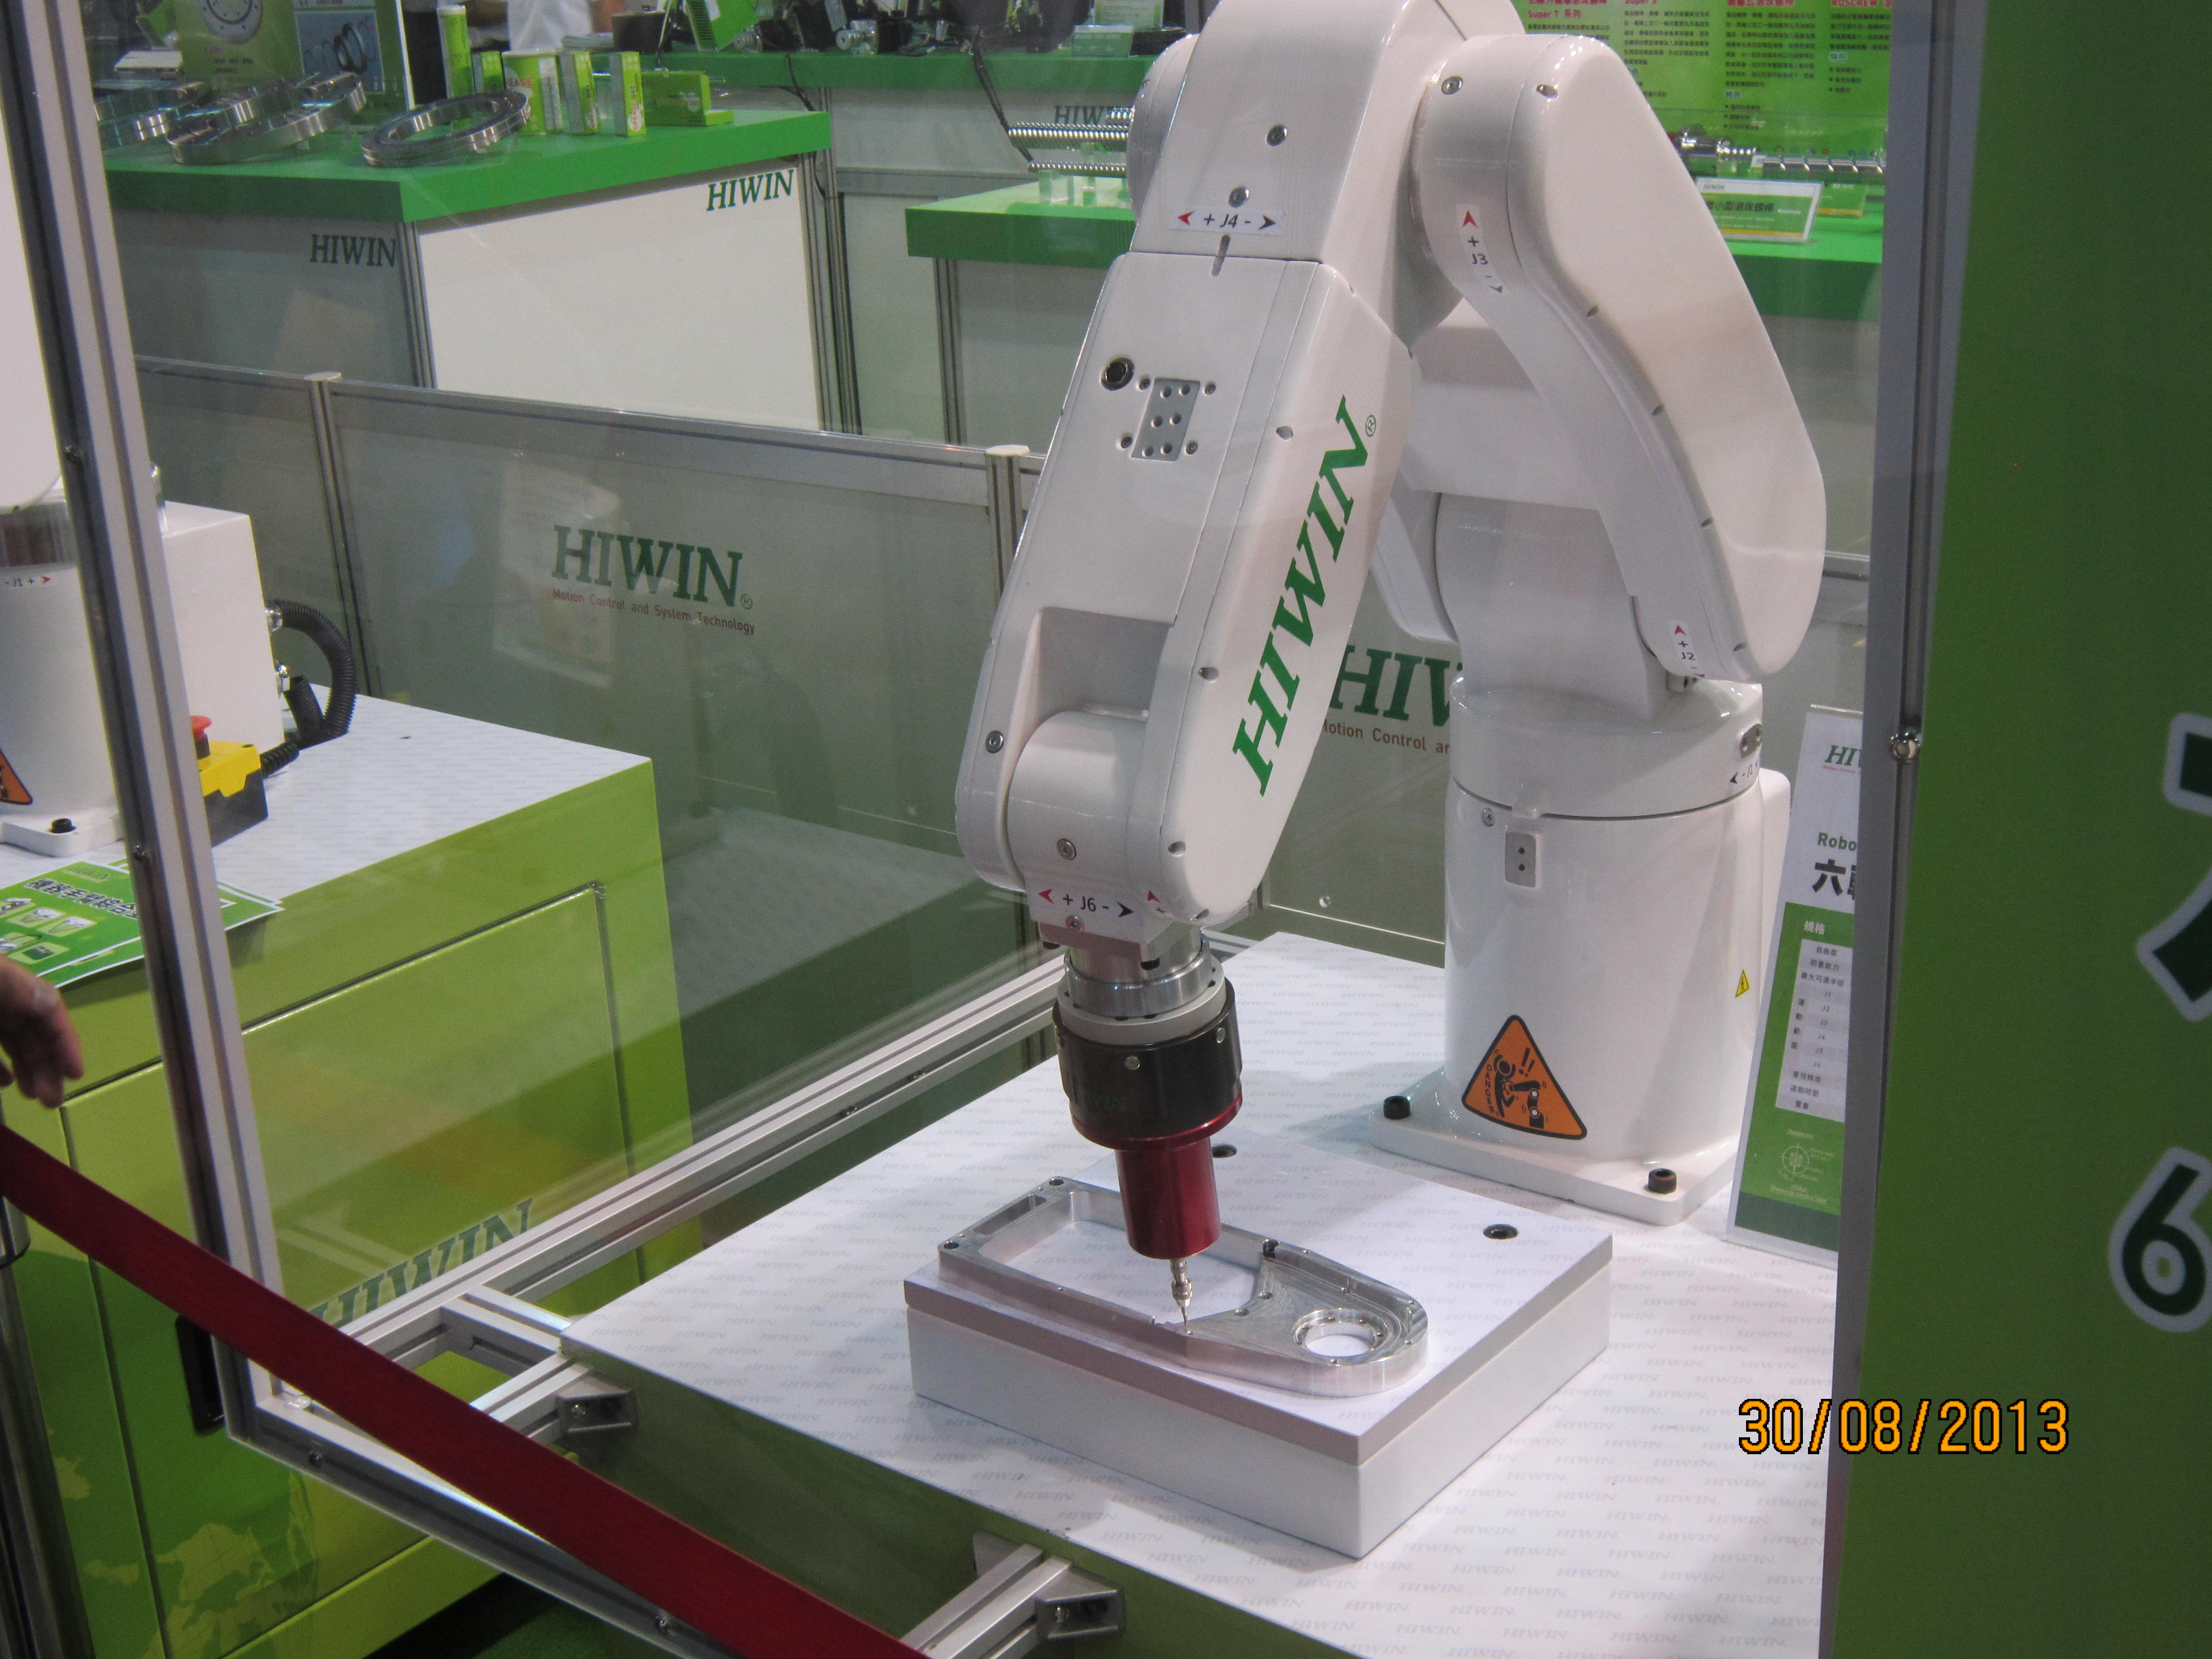 Hiwin is bright about market of intelligent robots.